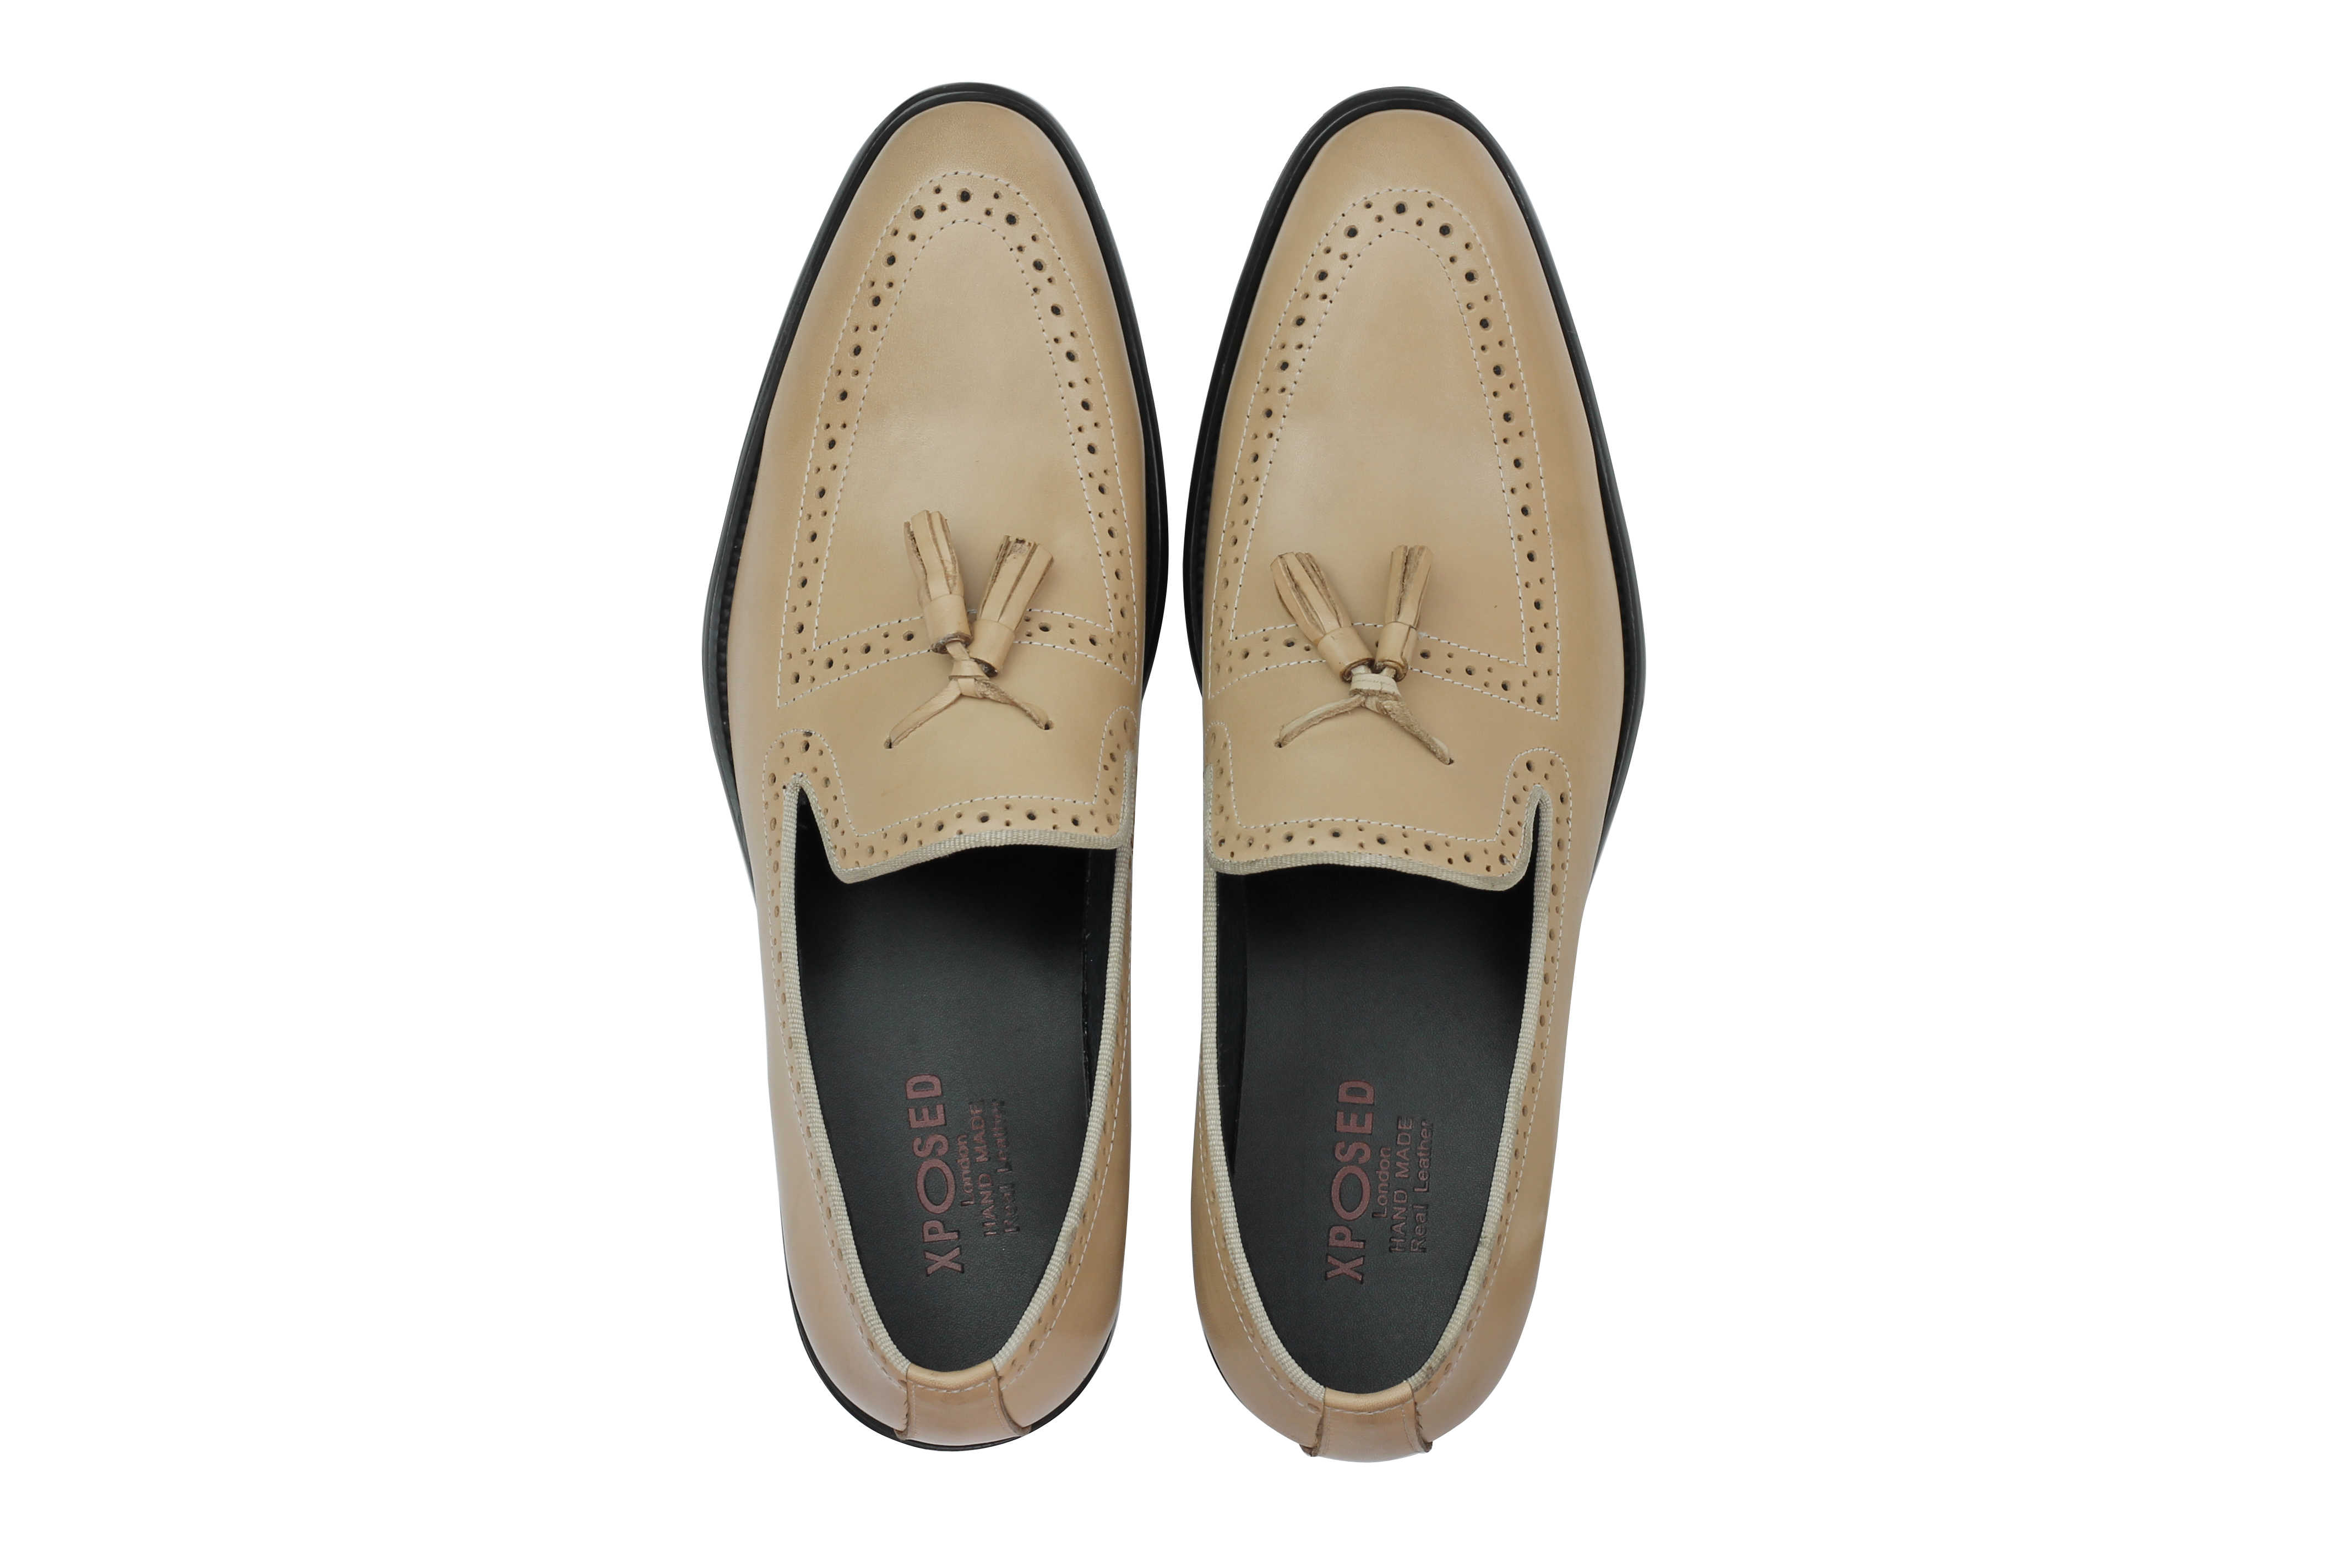 Mens-Real-Leather-Tassel-Loafers-Retro-Hand-Made-Brogue-Slip-on-Dress-Shoes thumbnail 6